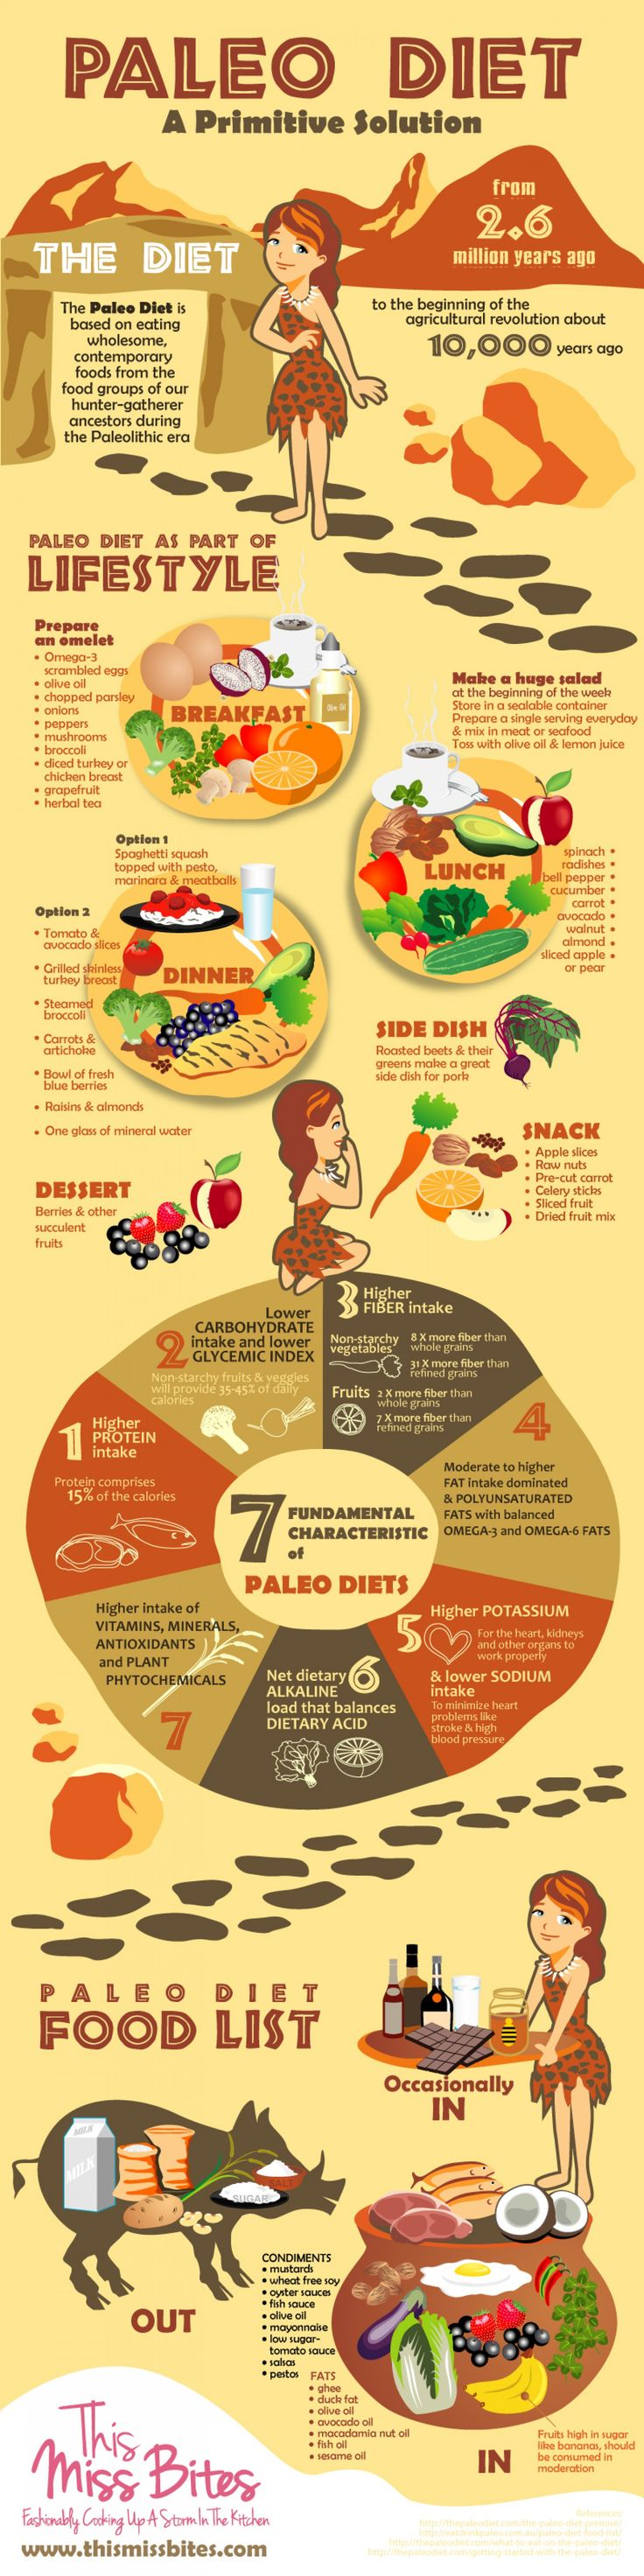 Paleolithic Diet - Paleo Diet Plan For Beginners [Infographic] - healthnbodytips.com